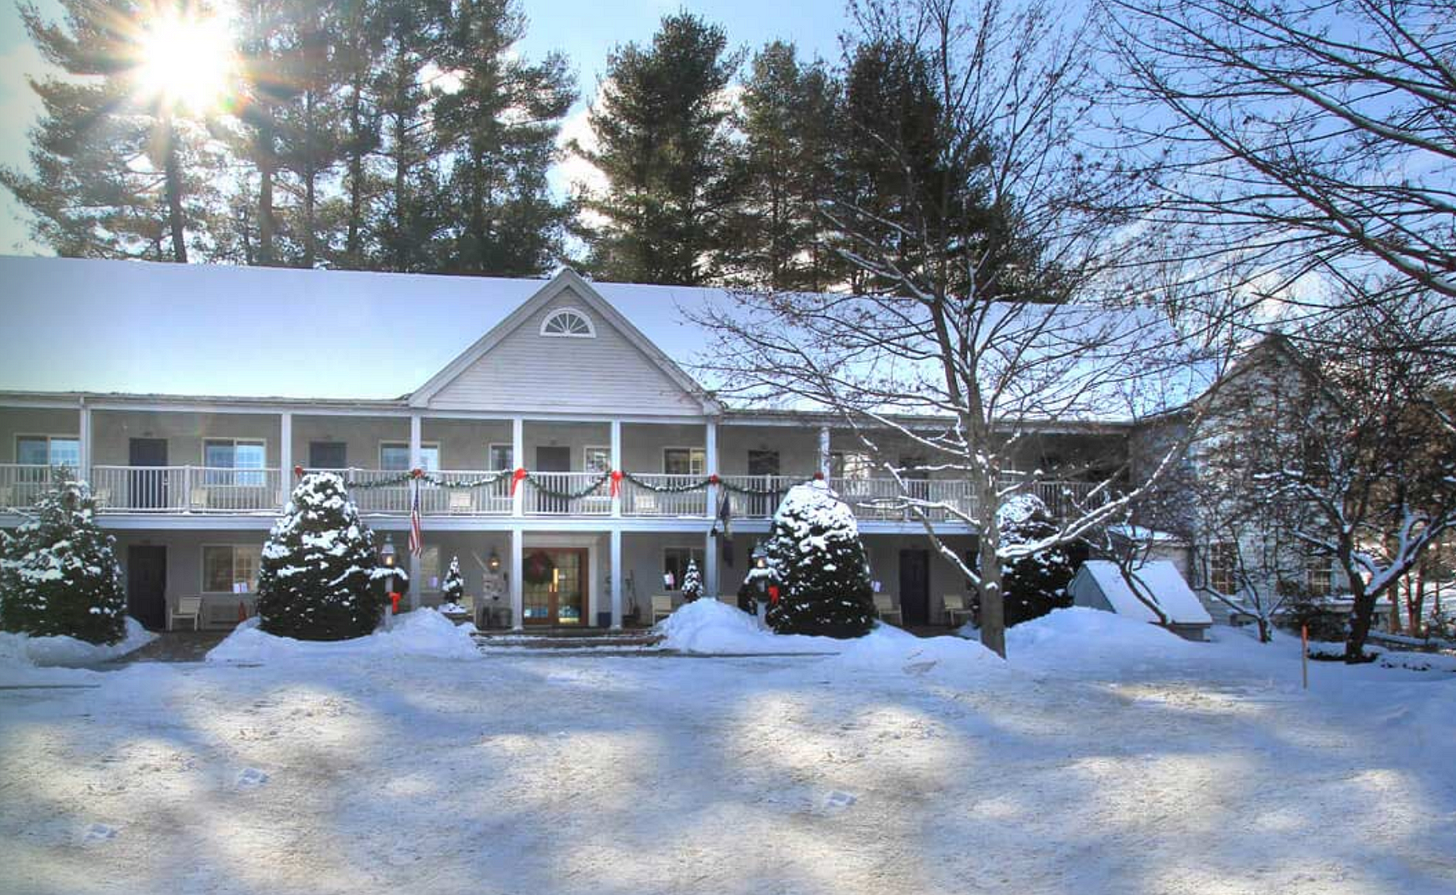 Photo of quaint hotel snow covered.